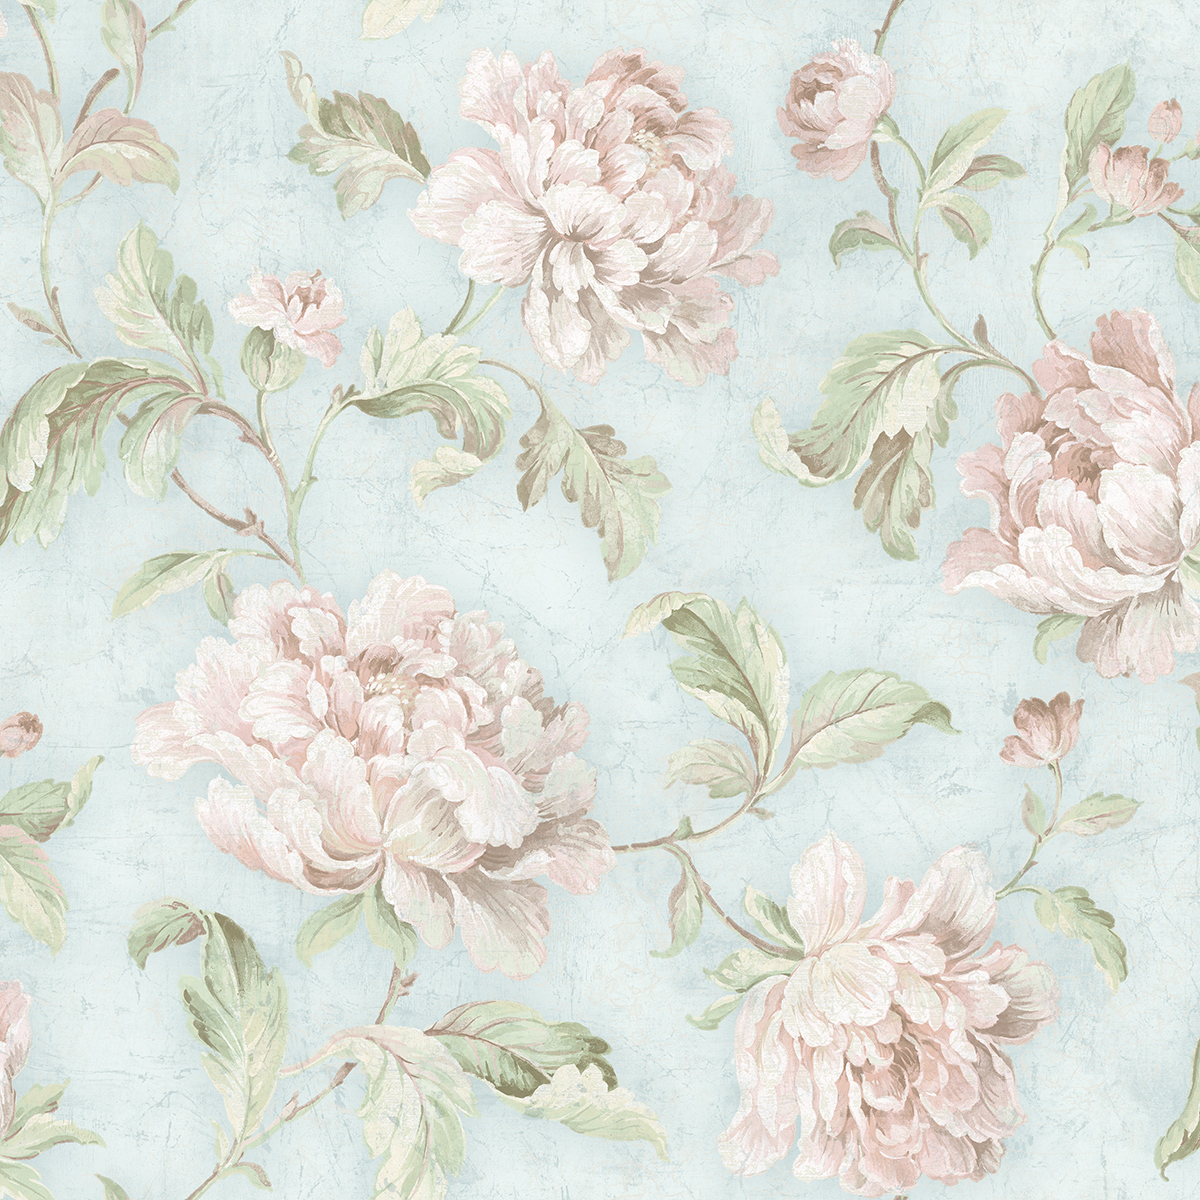 Tapeten Schlafzimmer Floral Wallquest Vintage Home 2 Page 26 Mv81501 Floral Trail